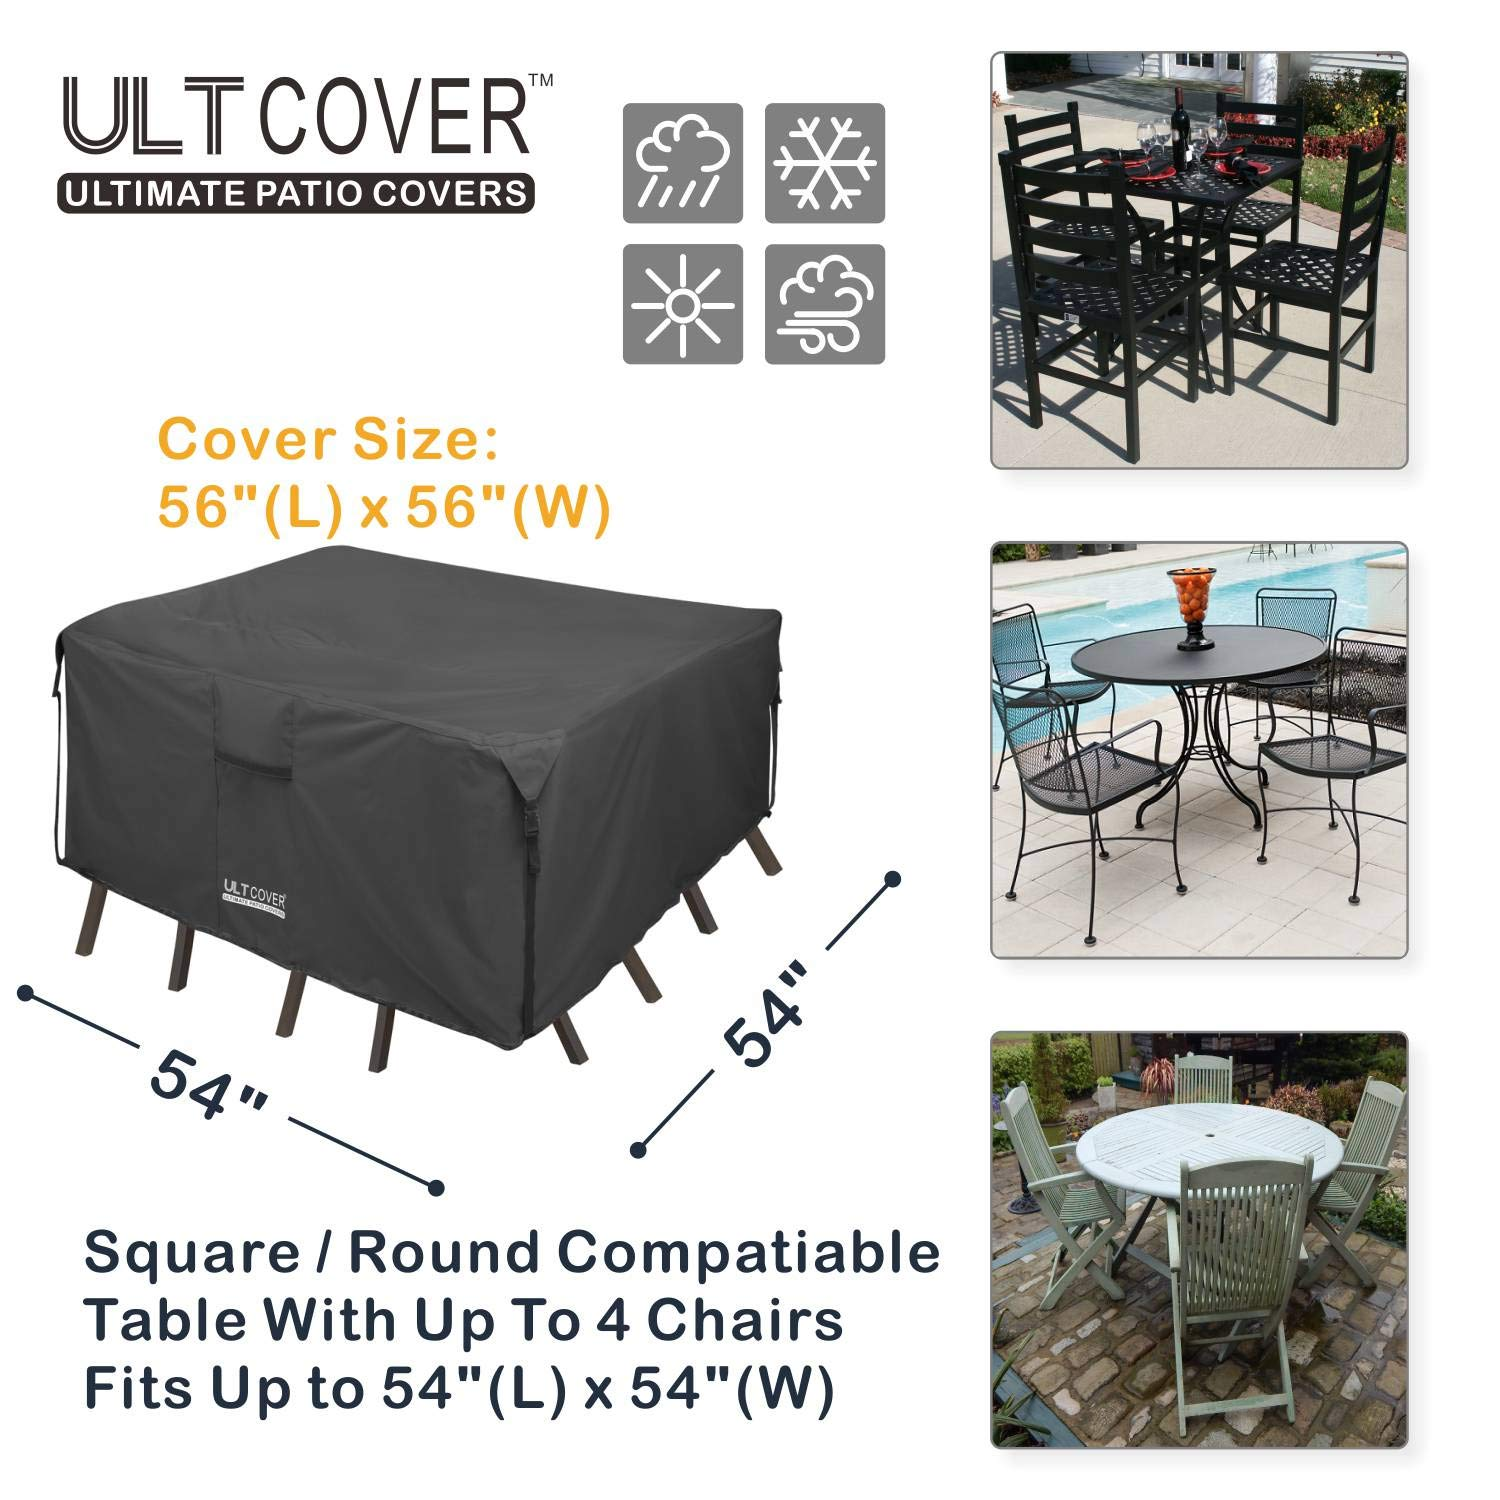 Amazon.com : ULTCOVER 600D PVC Durable Square Patio Table with Chair Cover, 100% Waterproof Outdoor Furniture Table Covers 54 inch, Black : Garden & Outdoor